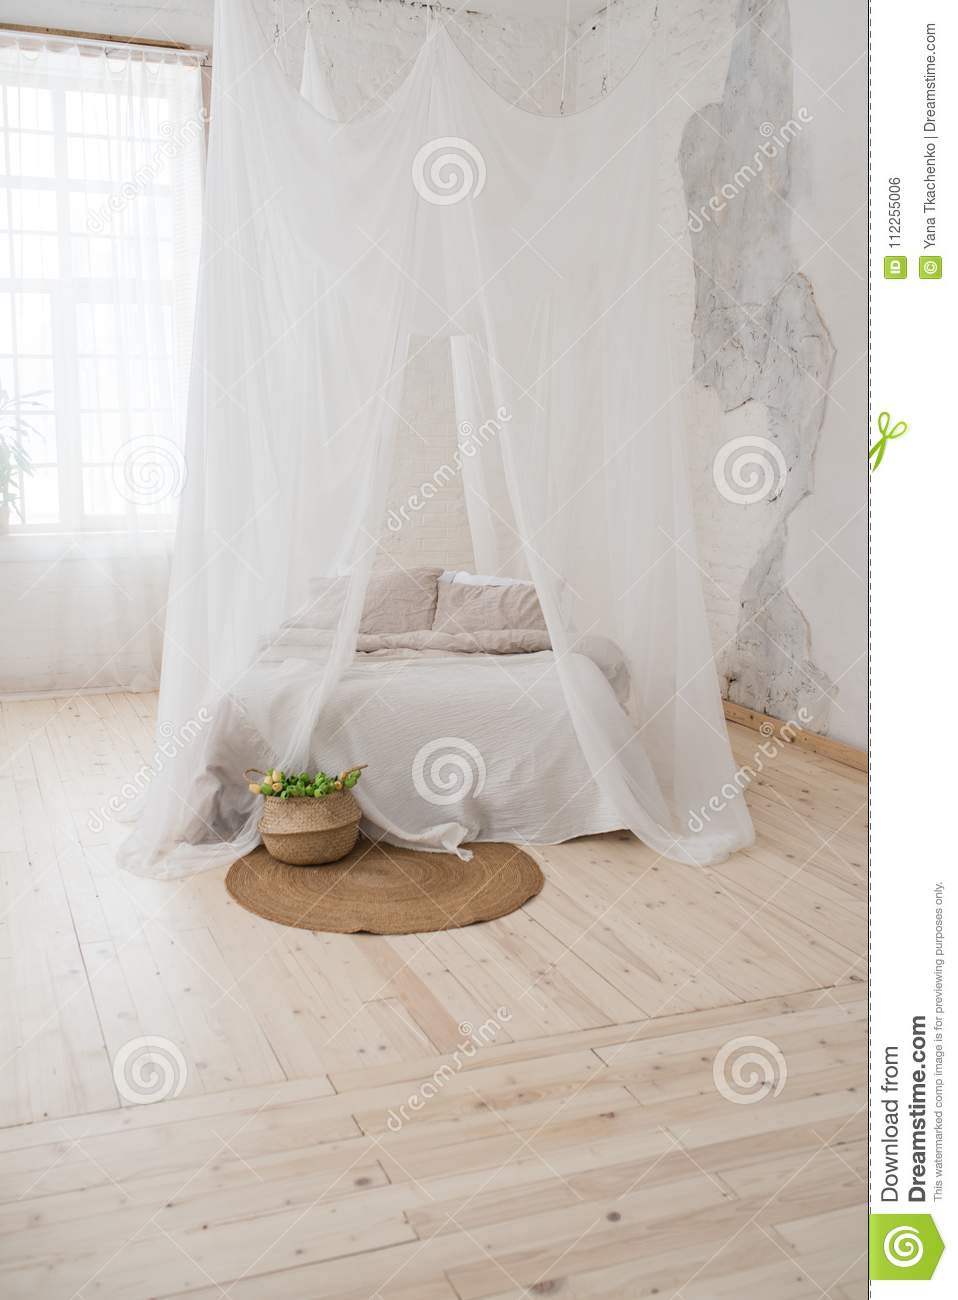 Double bed with gray bed linen and canopy. & Double Bed With Gray Bed Linen And Canopy. . Stock Photo - Image of ...